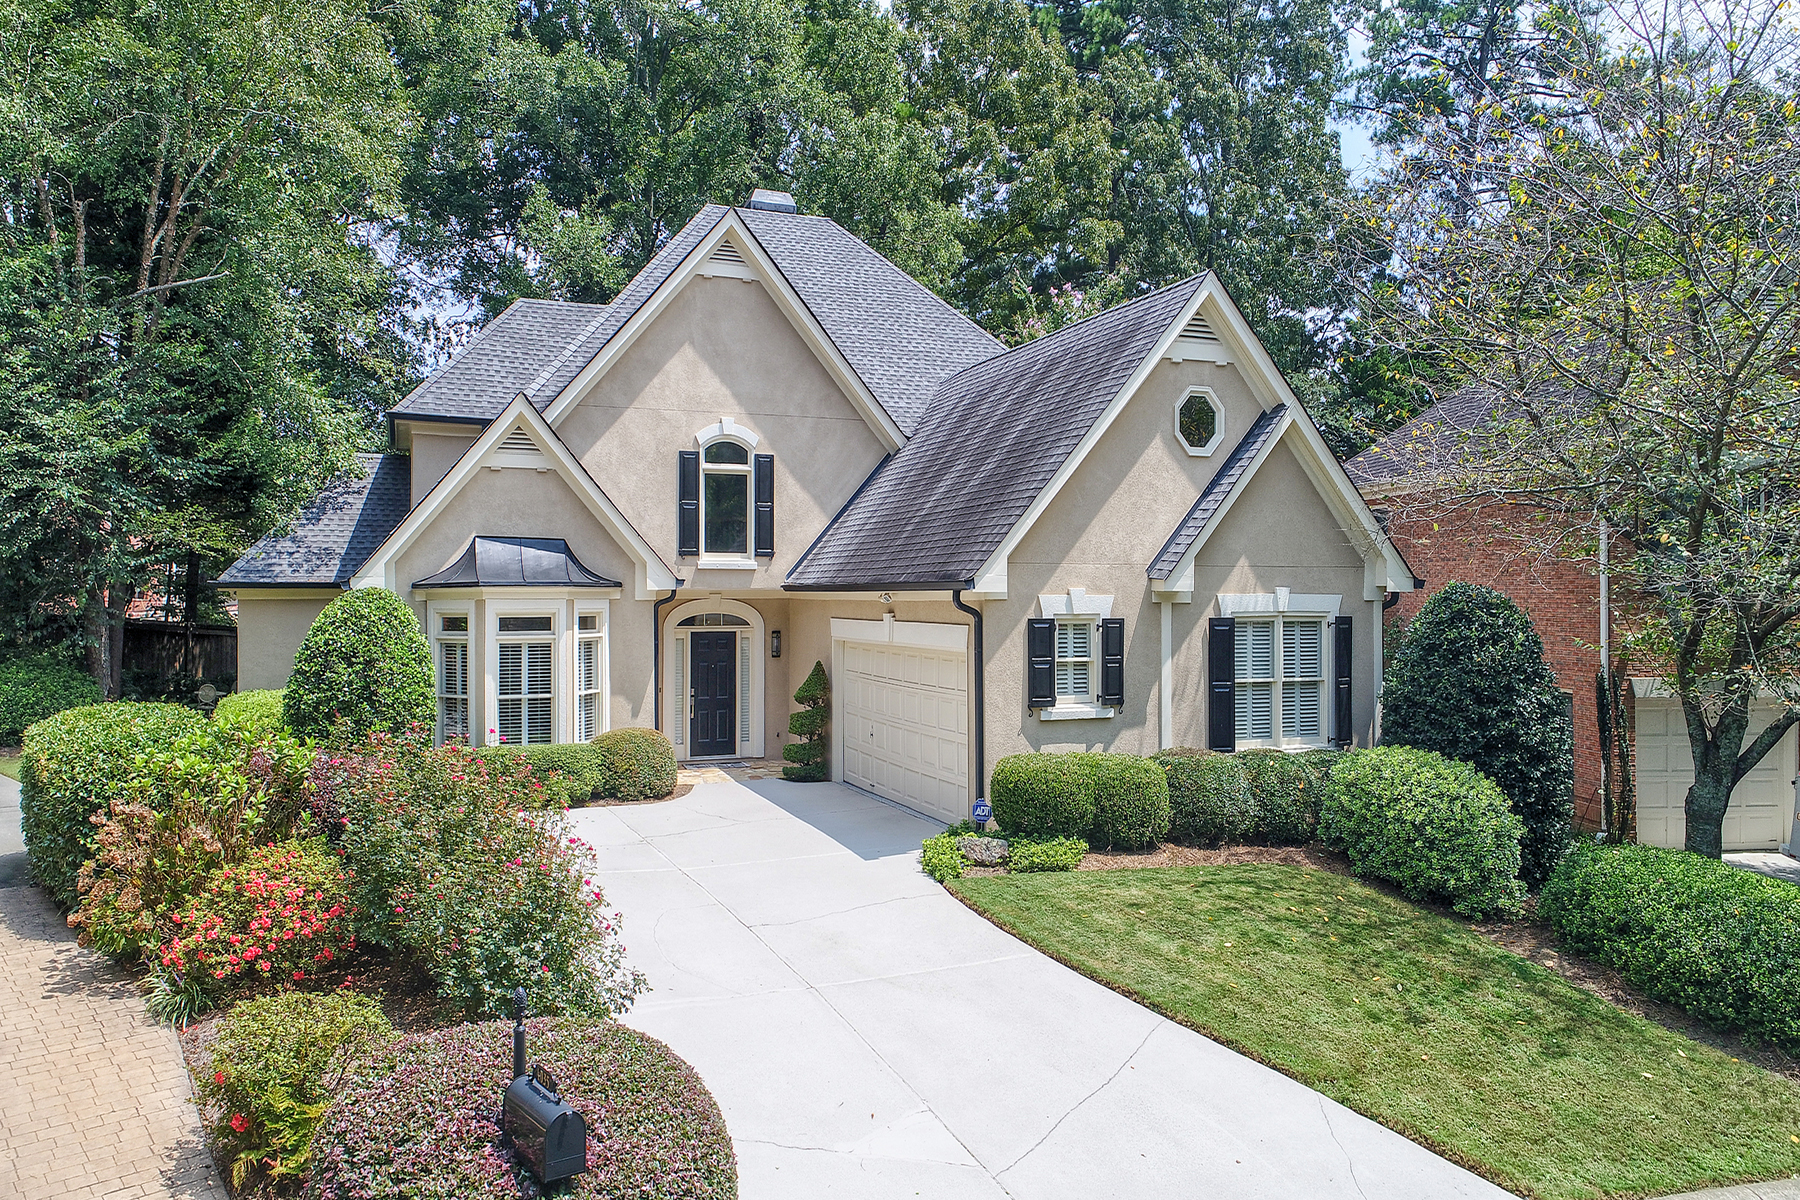 Single Family Home for Sale at Beautiful Modern Renovation Nestled in Private Enclave Close to Smith Elementary 4035 Stephens Mill Run NE Atlanta, Georgia 30342 United States